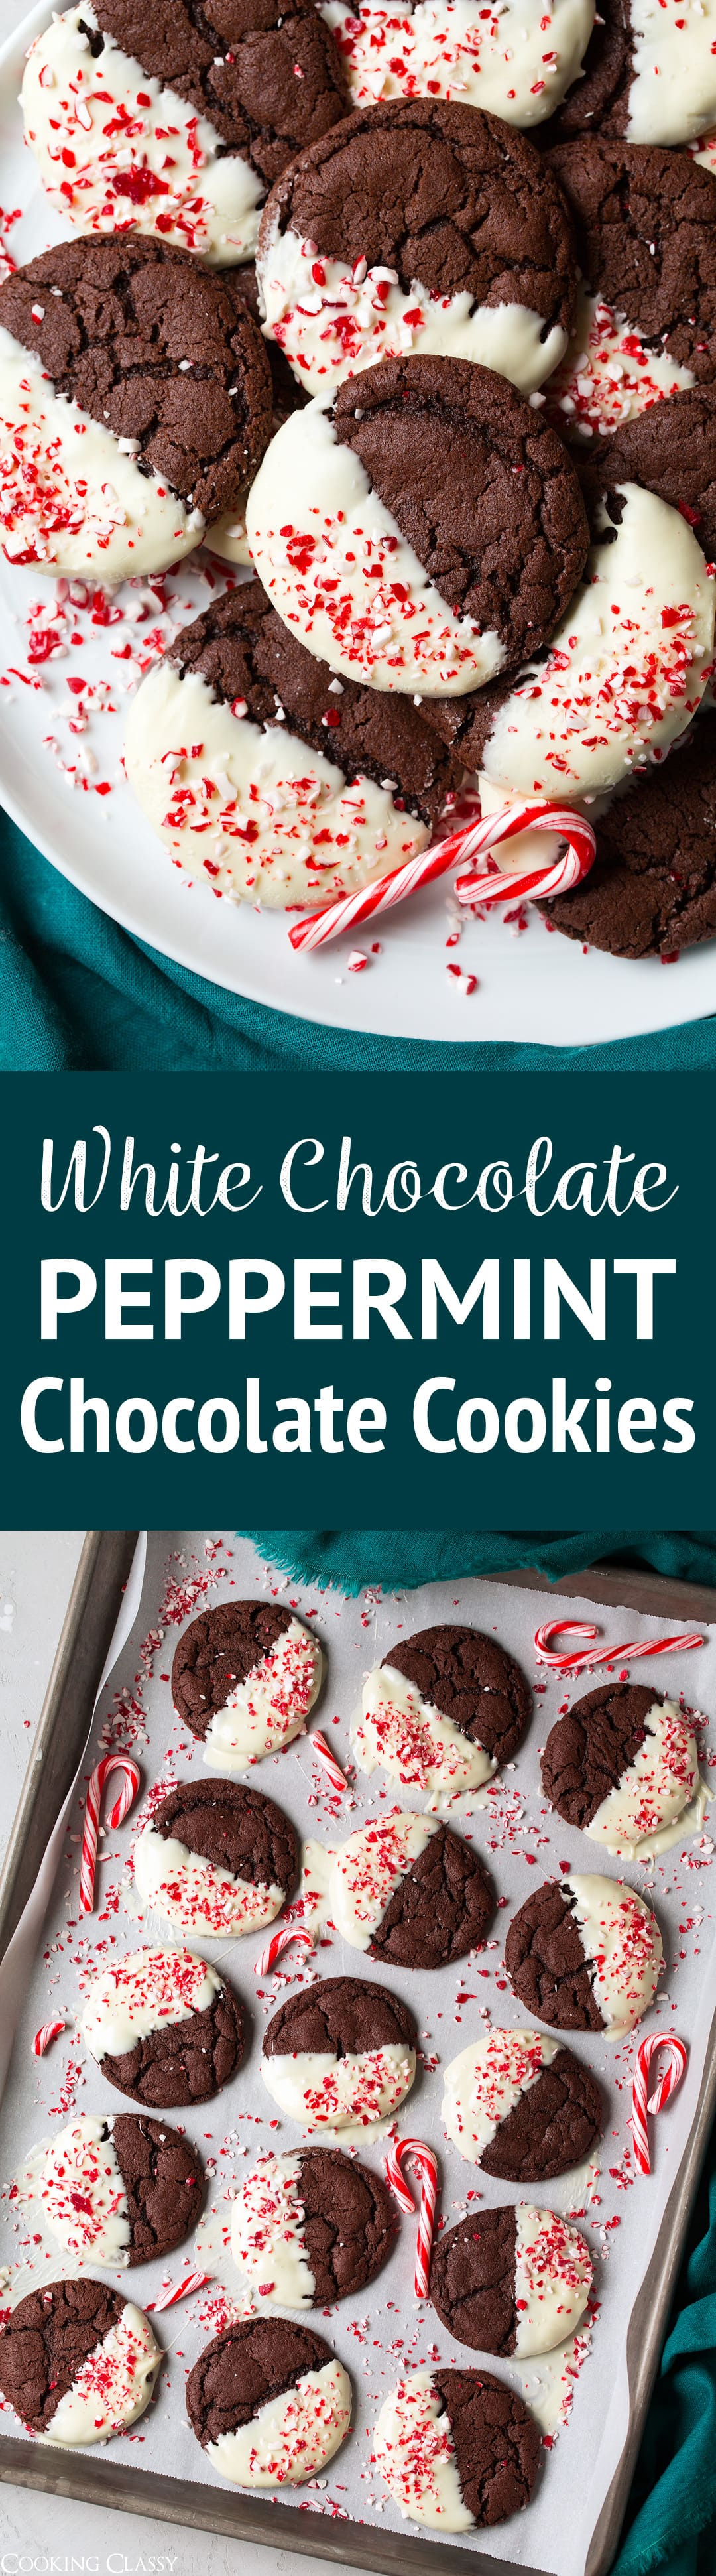 White Chocolate Dipped Peppermint Chocolate Cookies - such a delicious flavor combination! You get decadent chocolate cookies mixed with the real peppermint flavor, and they're finished with a layer of sweet and creamy white chocolate. So good that they'll likely become a new holiday tradition! #chocolate #cookies #christmascookies #dessert #christmas